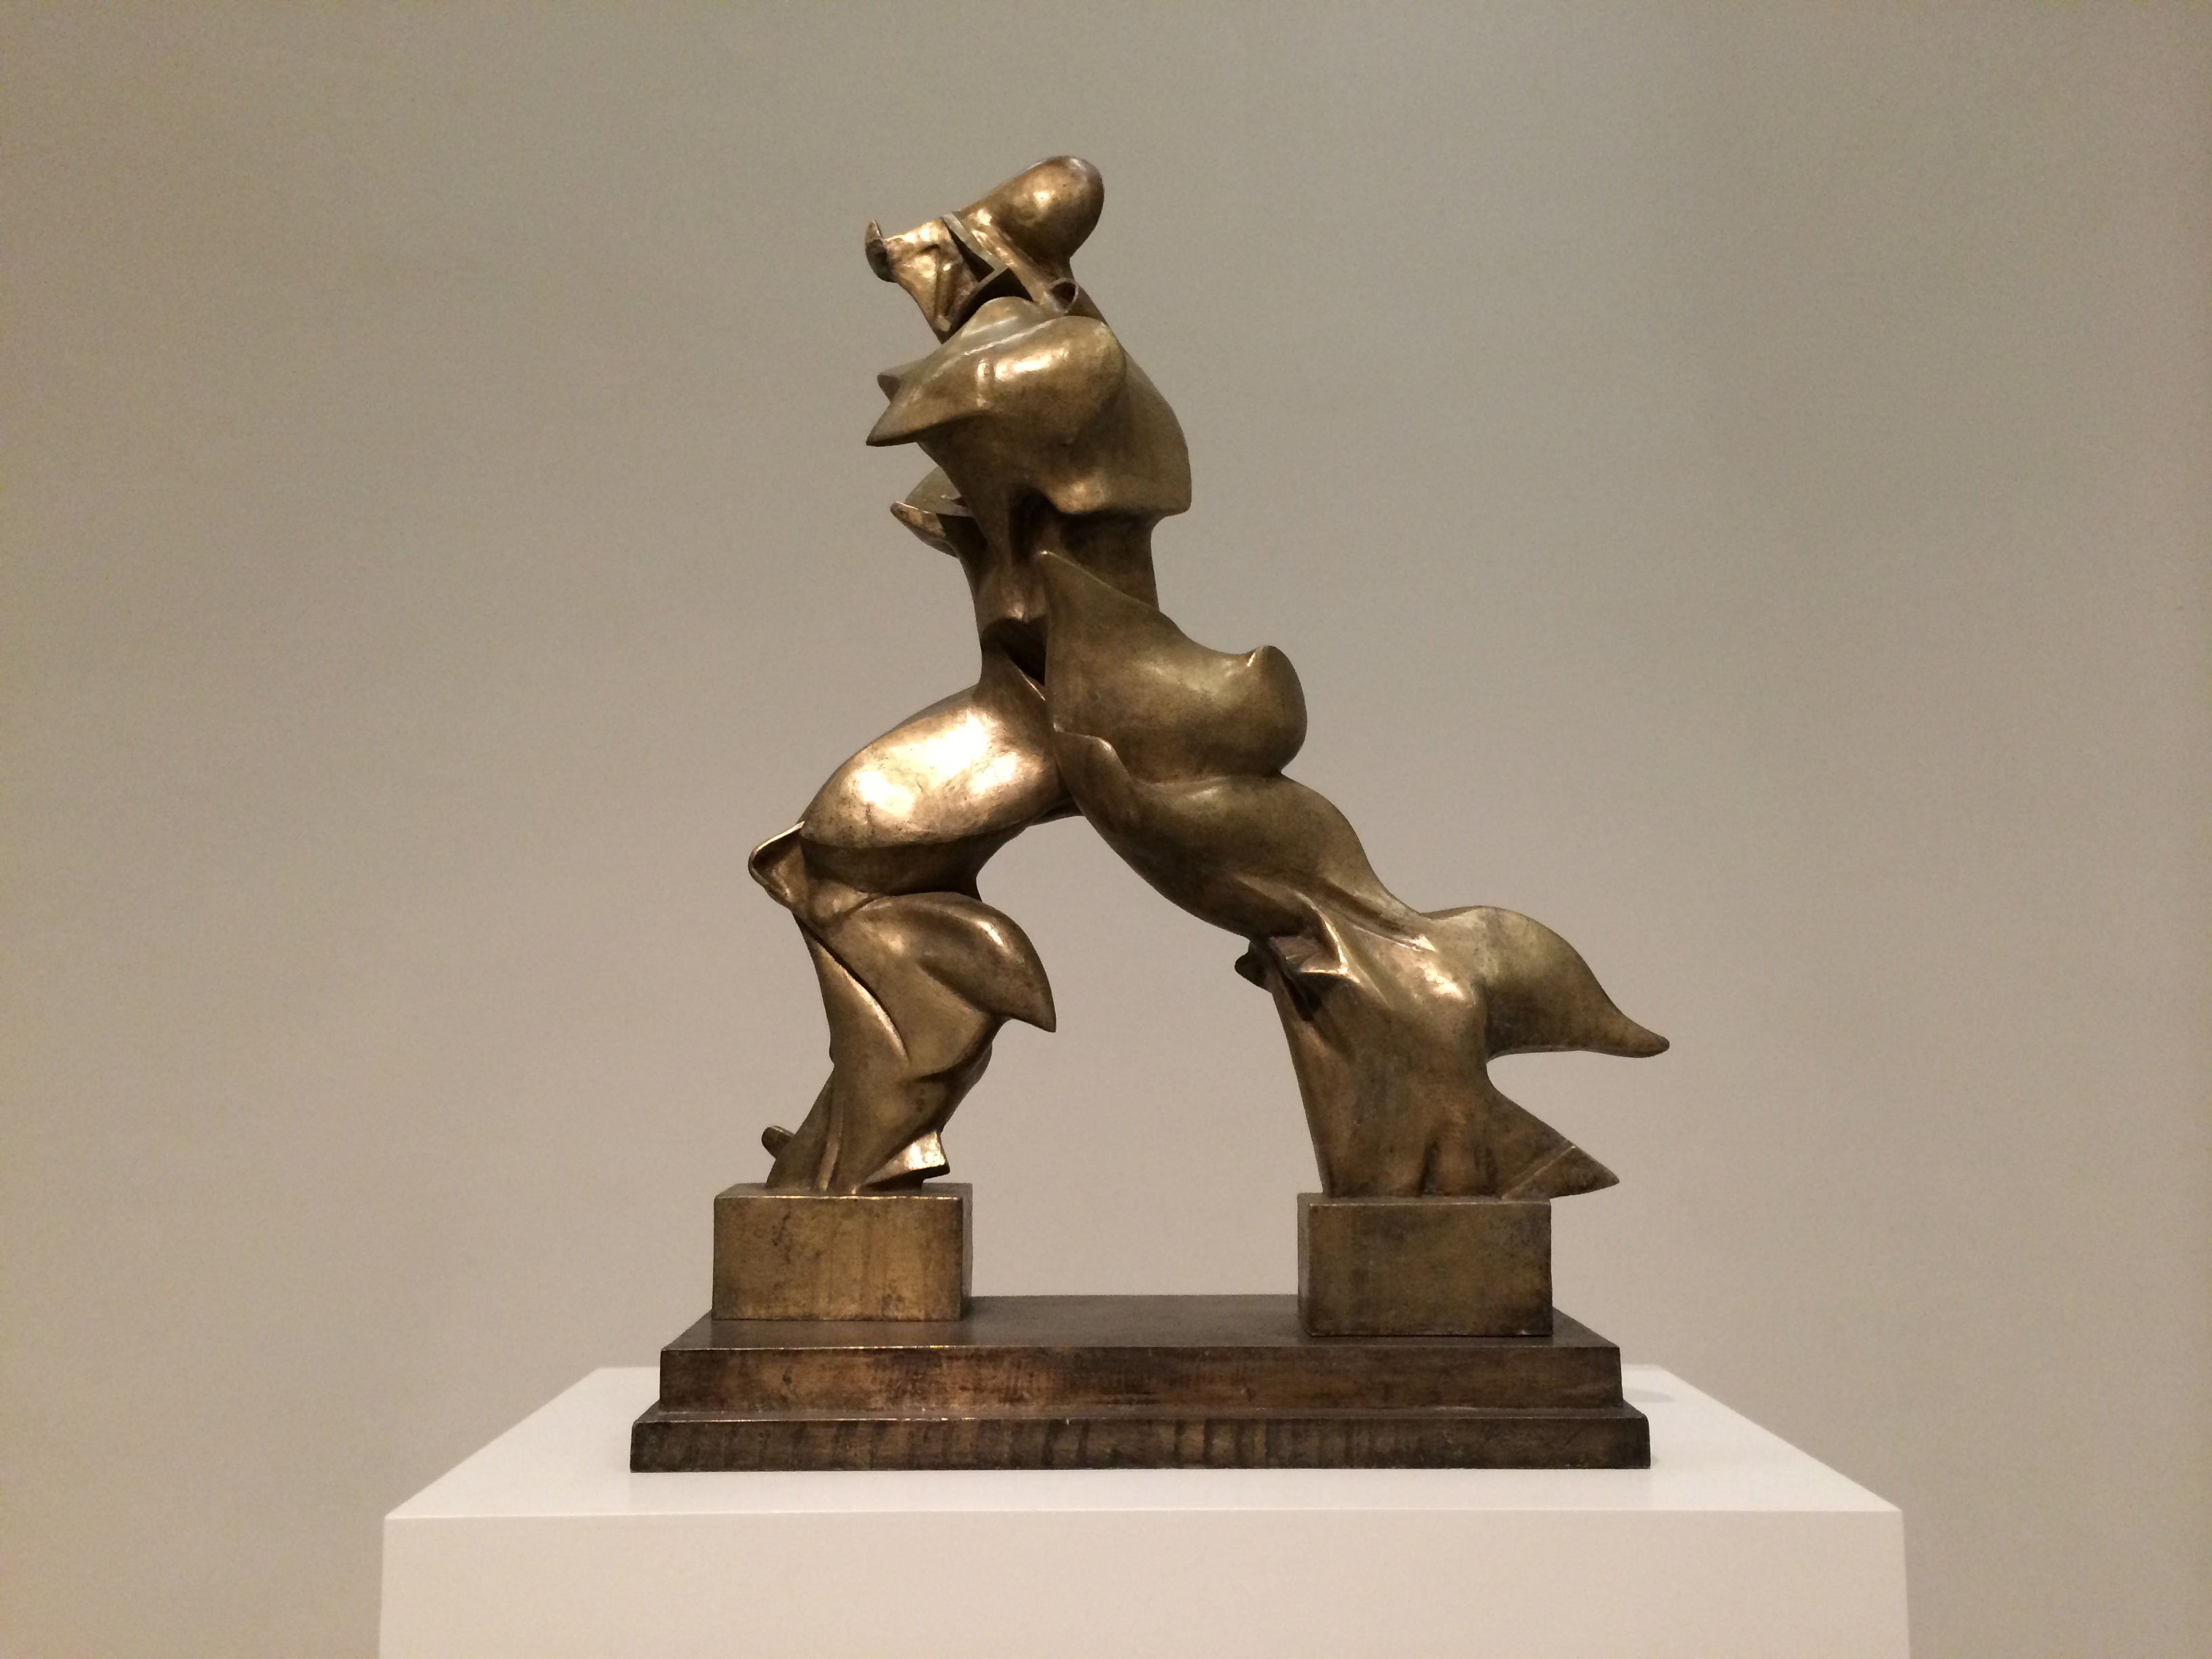 Umberto Boccioni Unique Forms of Continuity in Space, 1913, Bronze